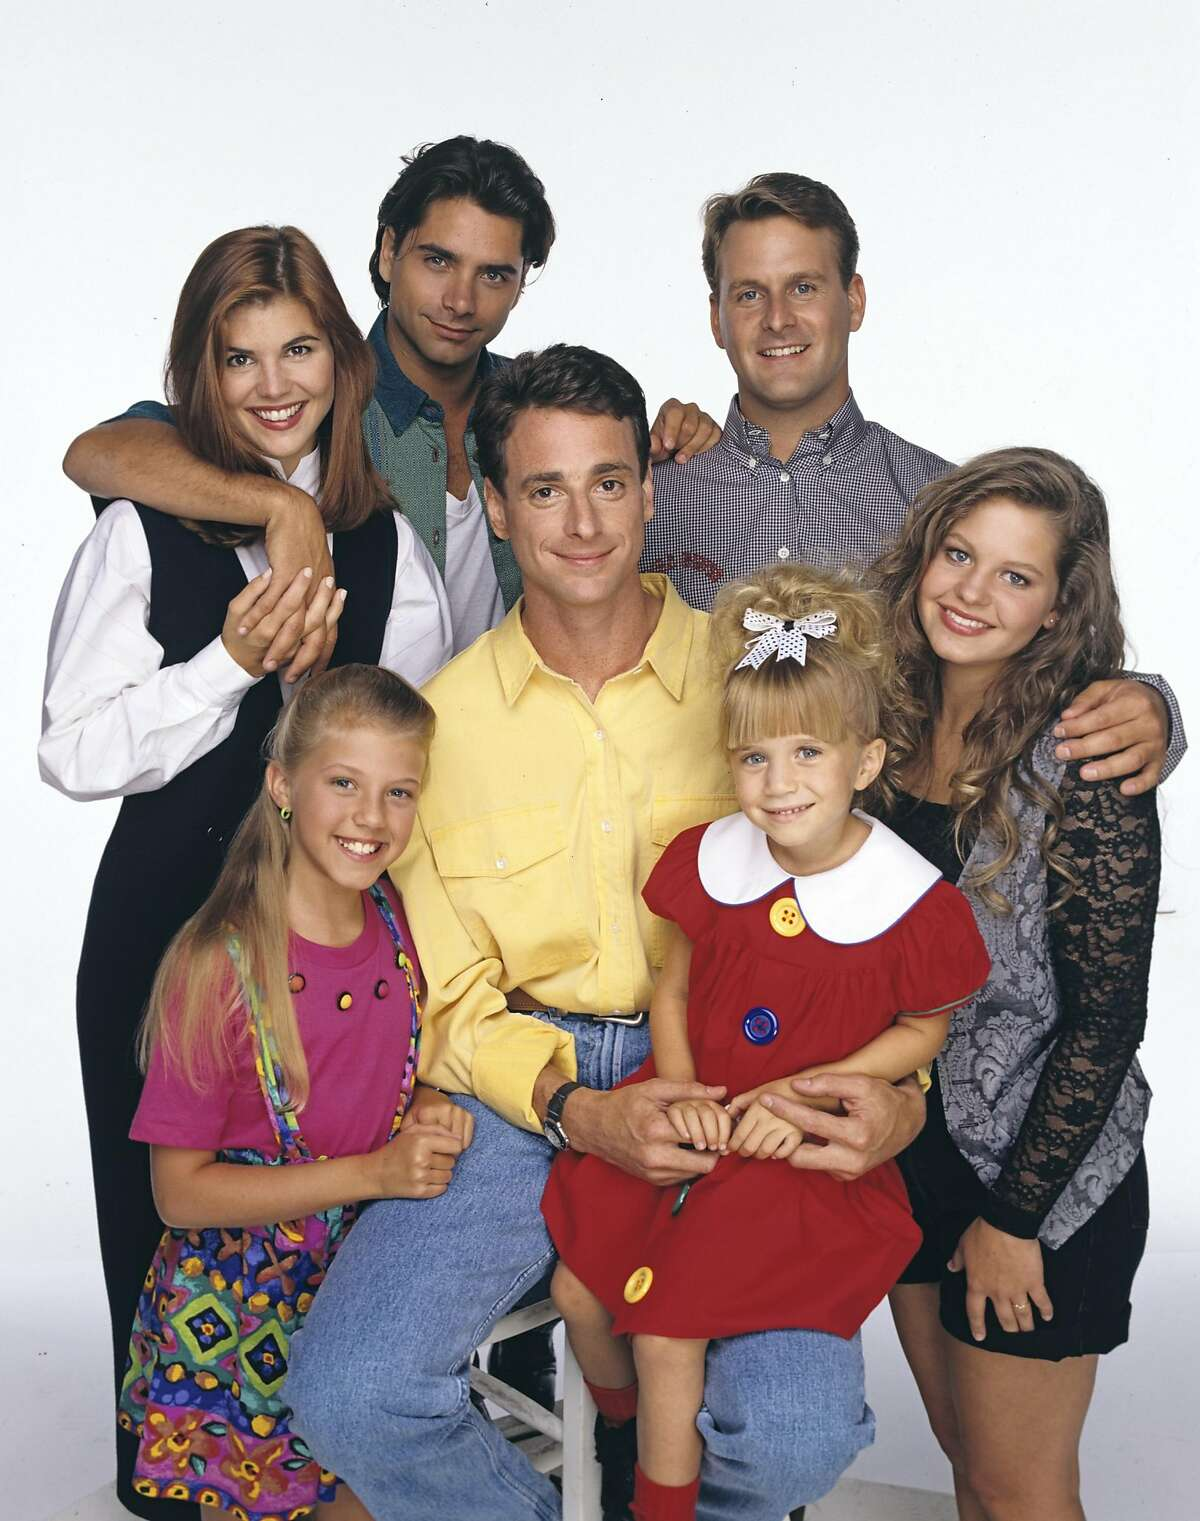 UNITED STATES - SEPTEMBER 14: FULL HOUSE - Season Seven - Gallery - 9/14/93, Pictured, back row: Lori Loughlin (Rebecca), John Stamos (Jesse), Dave Coulier (Joey); bottom row: Jodie Sweetin (Stephanie), Bob Saget (Danny), Mary Kate Olsen (Michelle), Candace Cameron (D.J.), (Photo by Bob D'Amico/ABC via Getty Images)